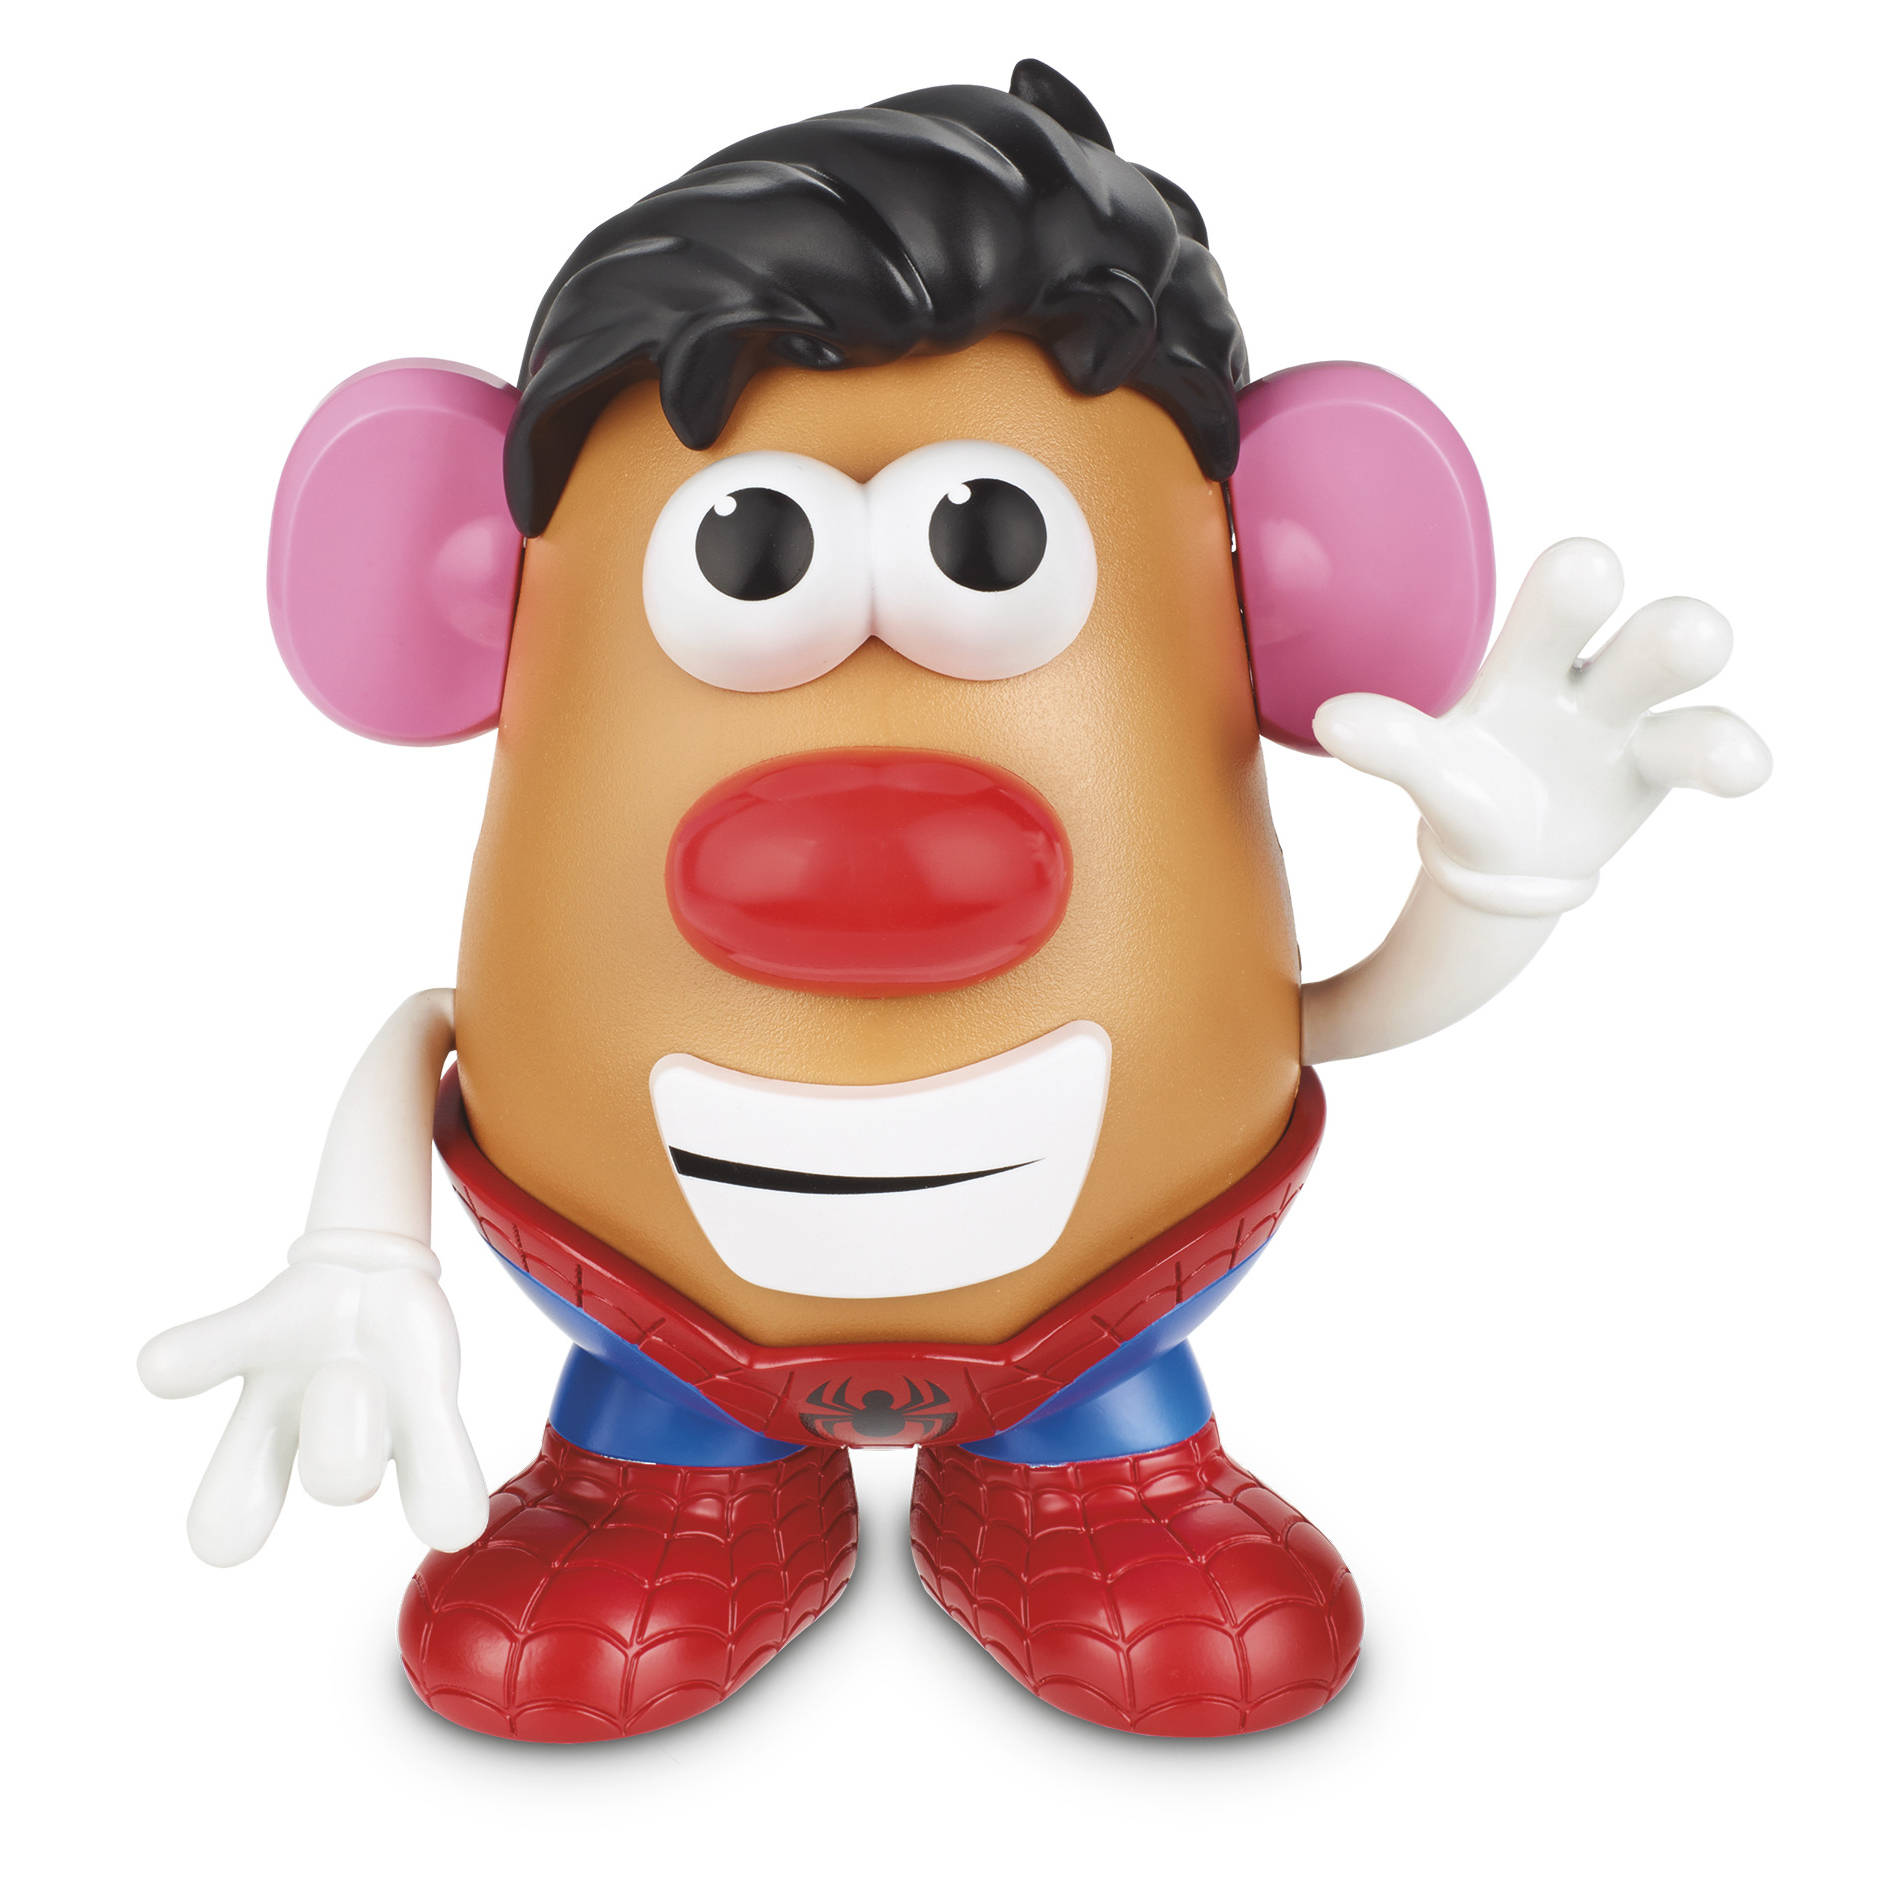 Playskool Friends Mr. Potato Head Marvel Spider-Man/Peter Parker